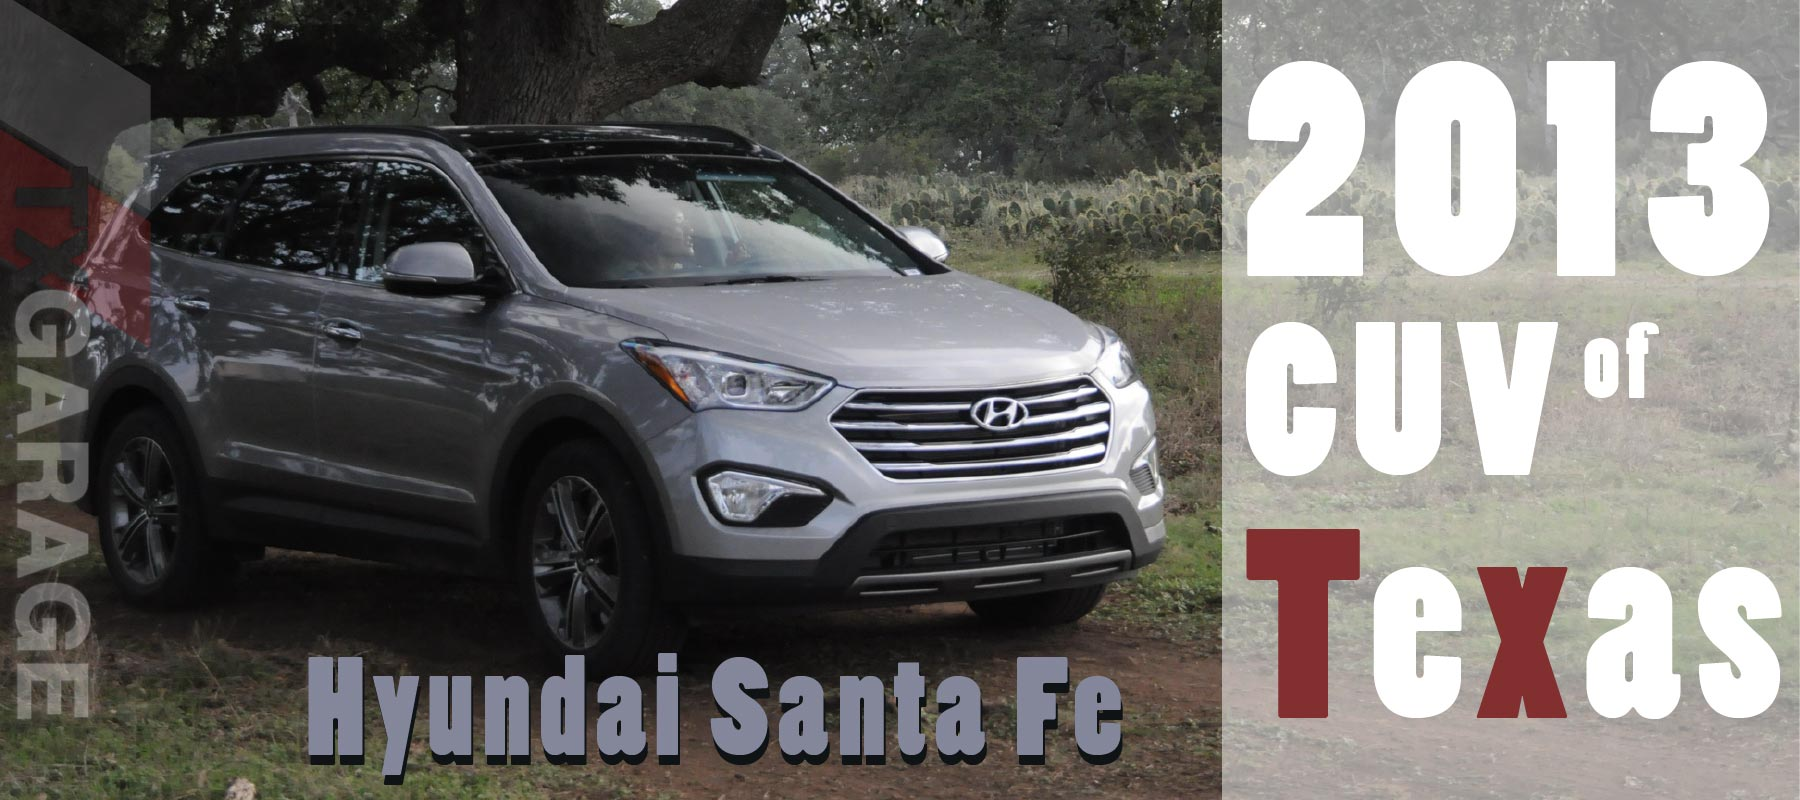 2013 CUV of Texas the 2013 Hyundai Santa Fe